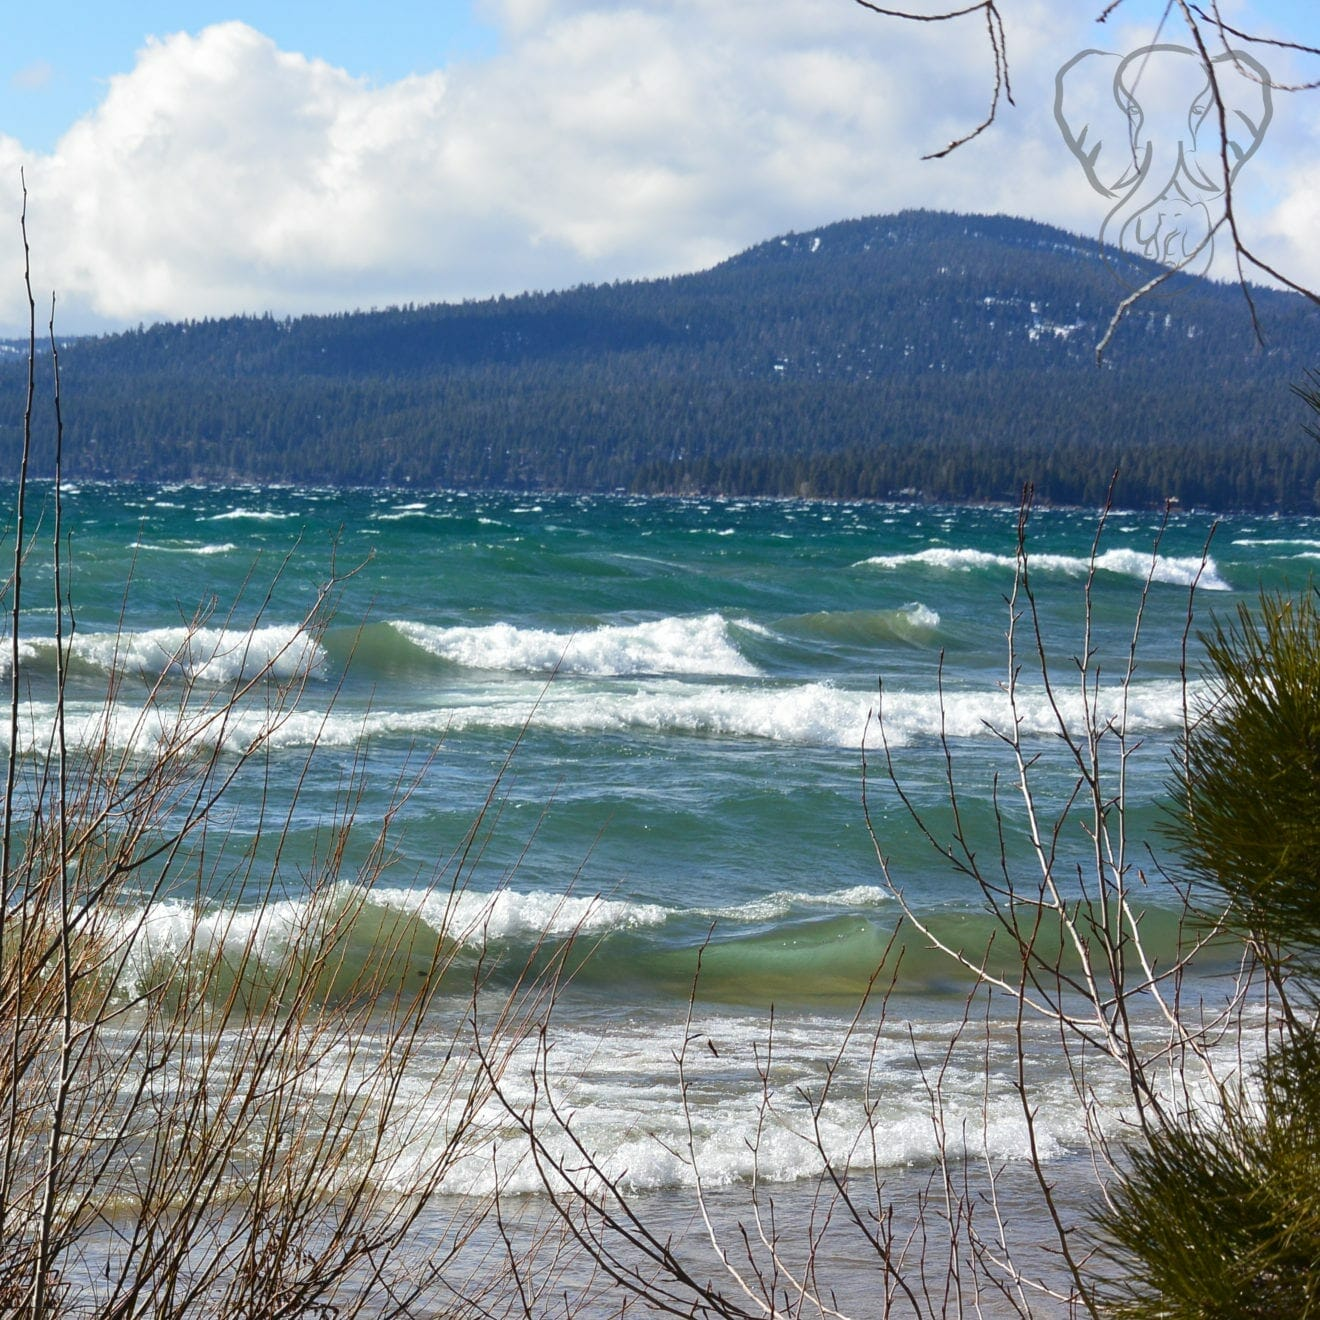 Heavy waves on a sunny day on the shores of North Lake Tahoe (Miranda Hernandez)